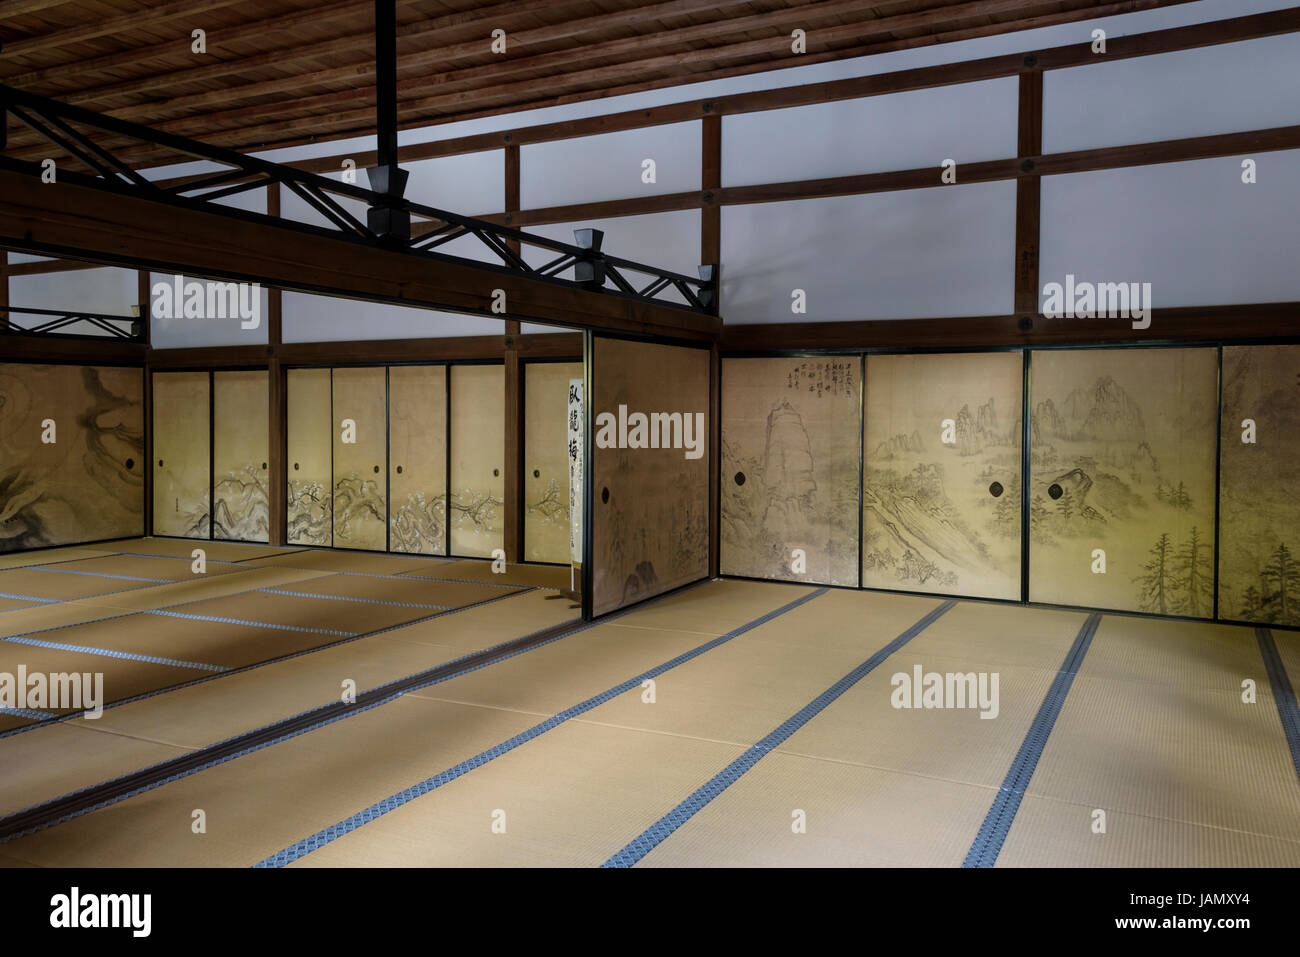 Interior of Kuri building at Ryoanji temple, with tatami mats and painted screens - Stock Image